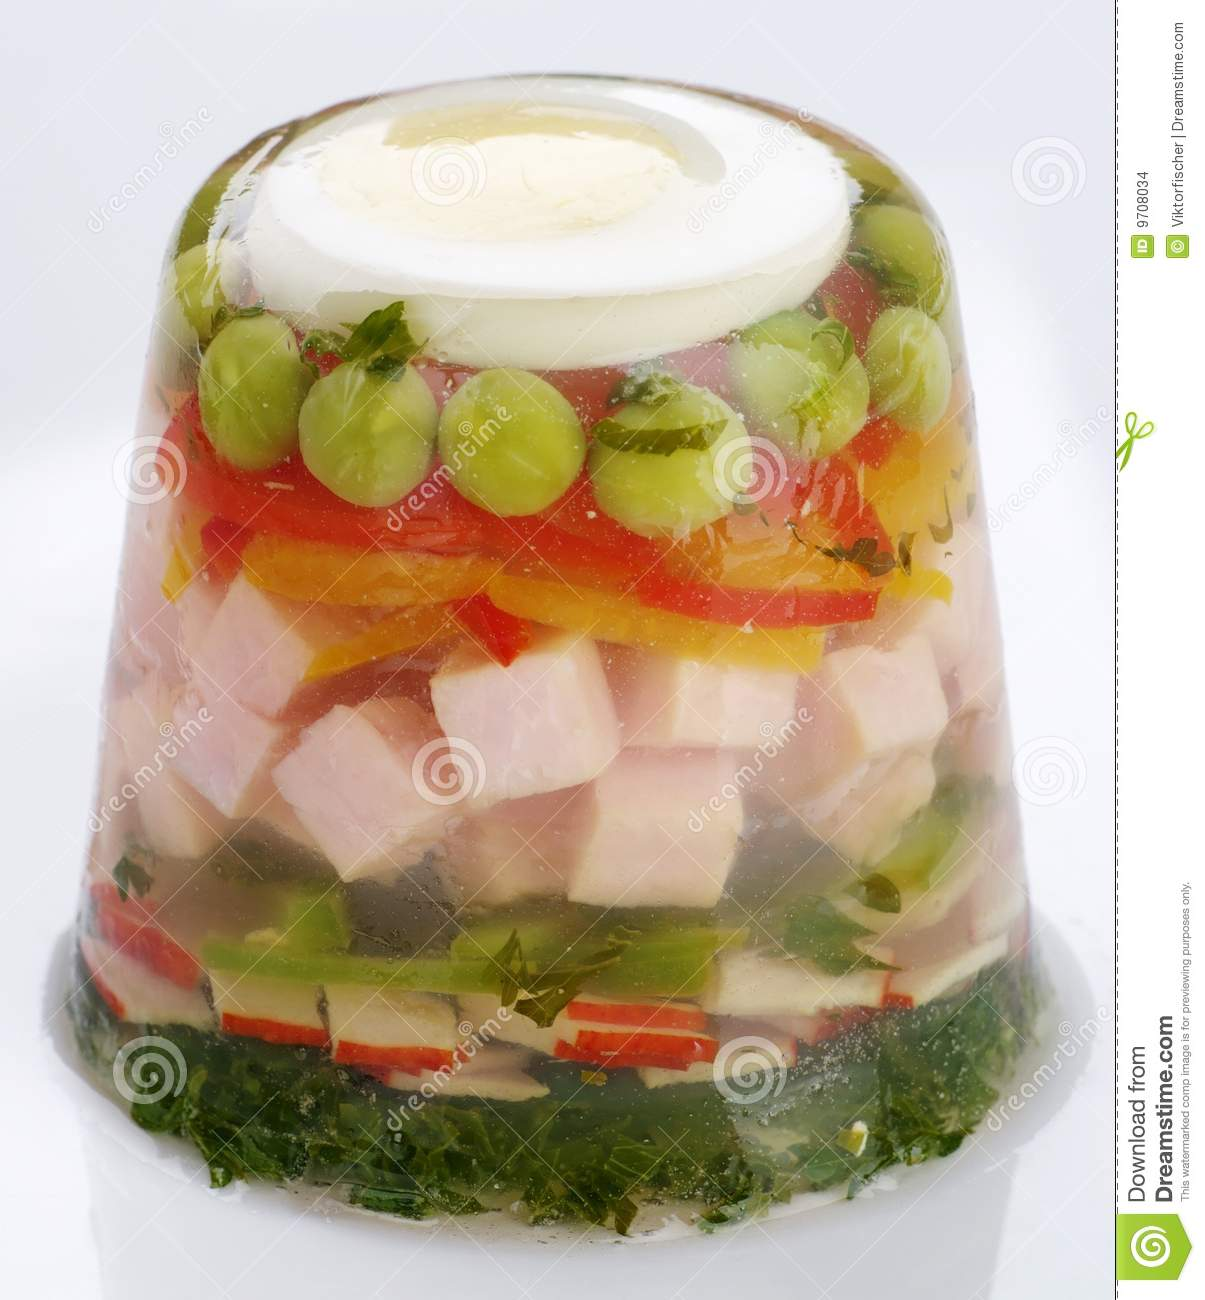 Aspic Stock Images - Image: 9708034